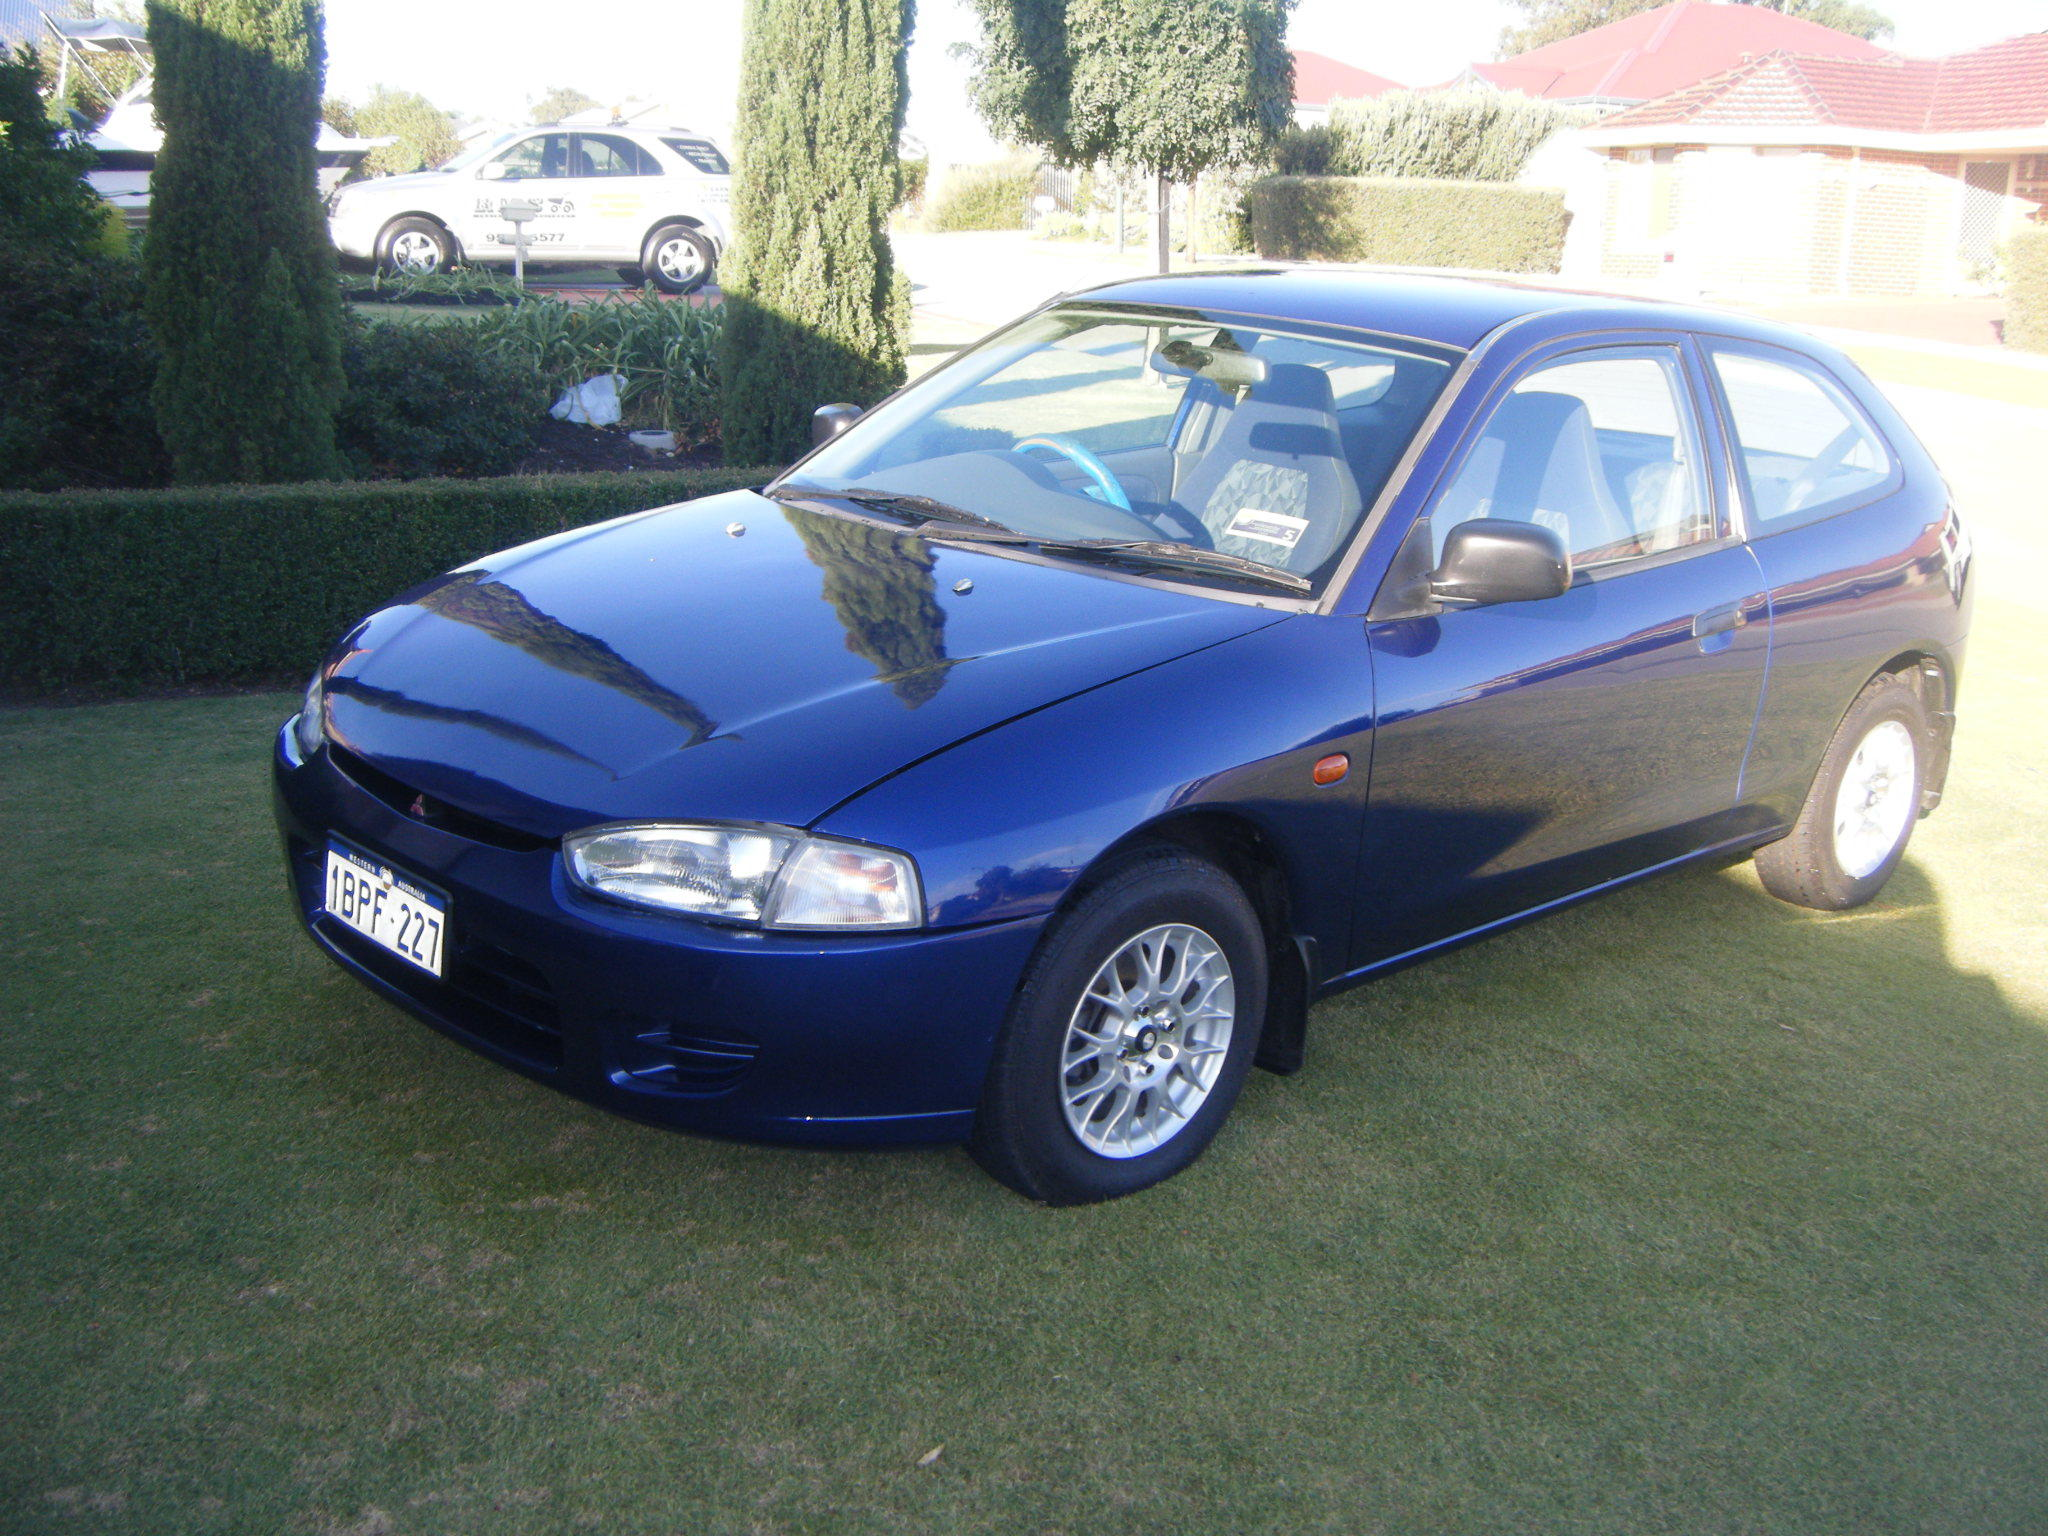 Antheachantal 1997 Mitsubishi Mirage Specs, Photos